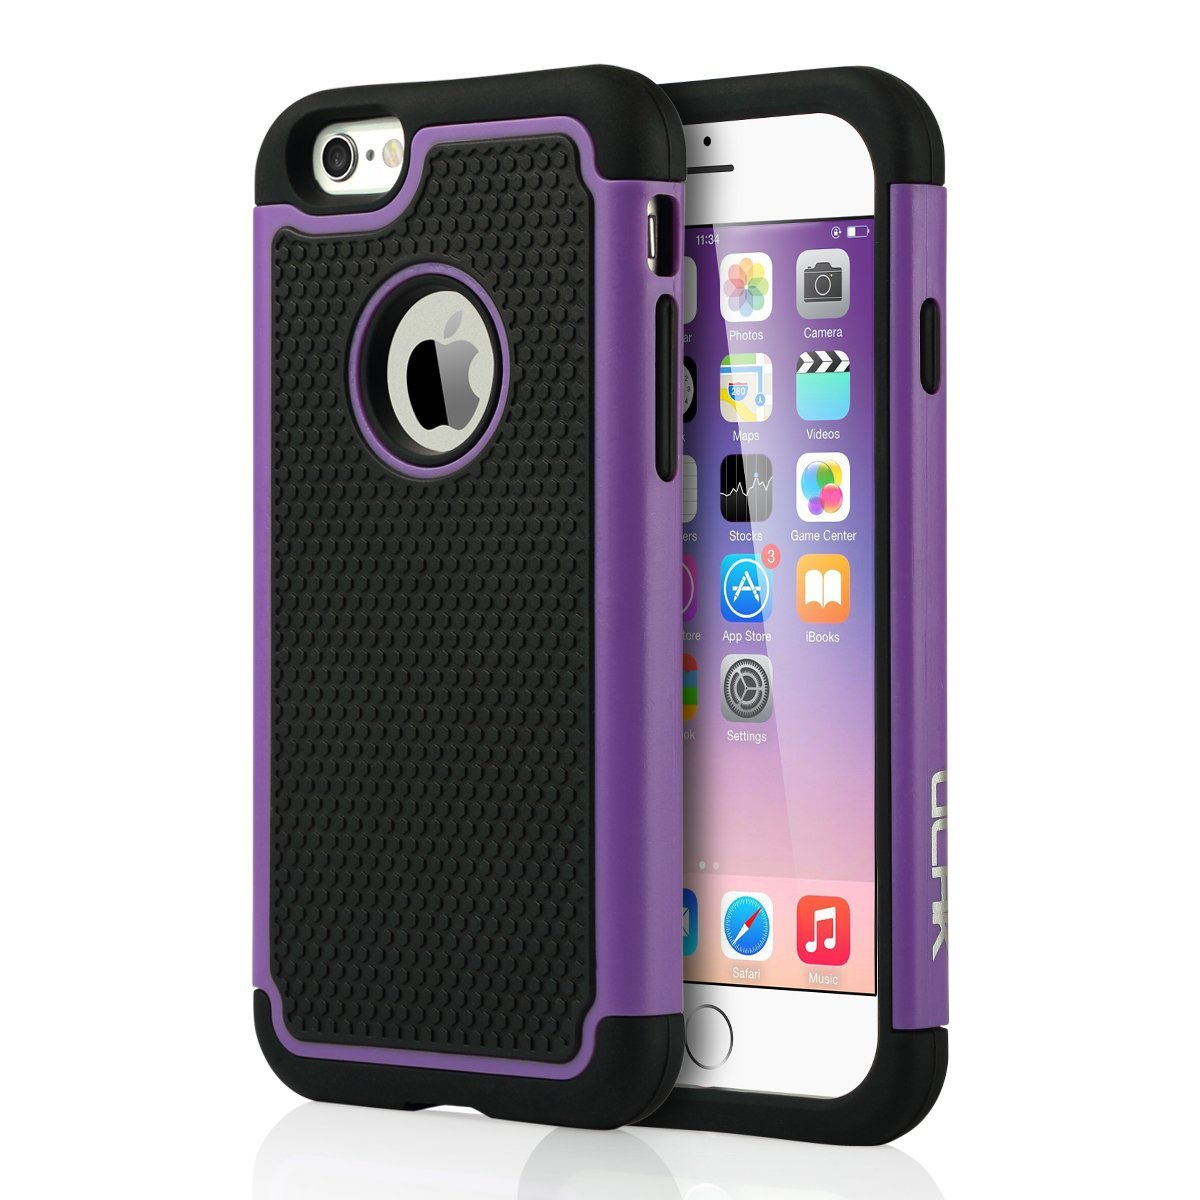 apple iphone 6 cases rugged rubber shockproof protective cover for 13446